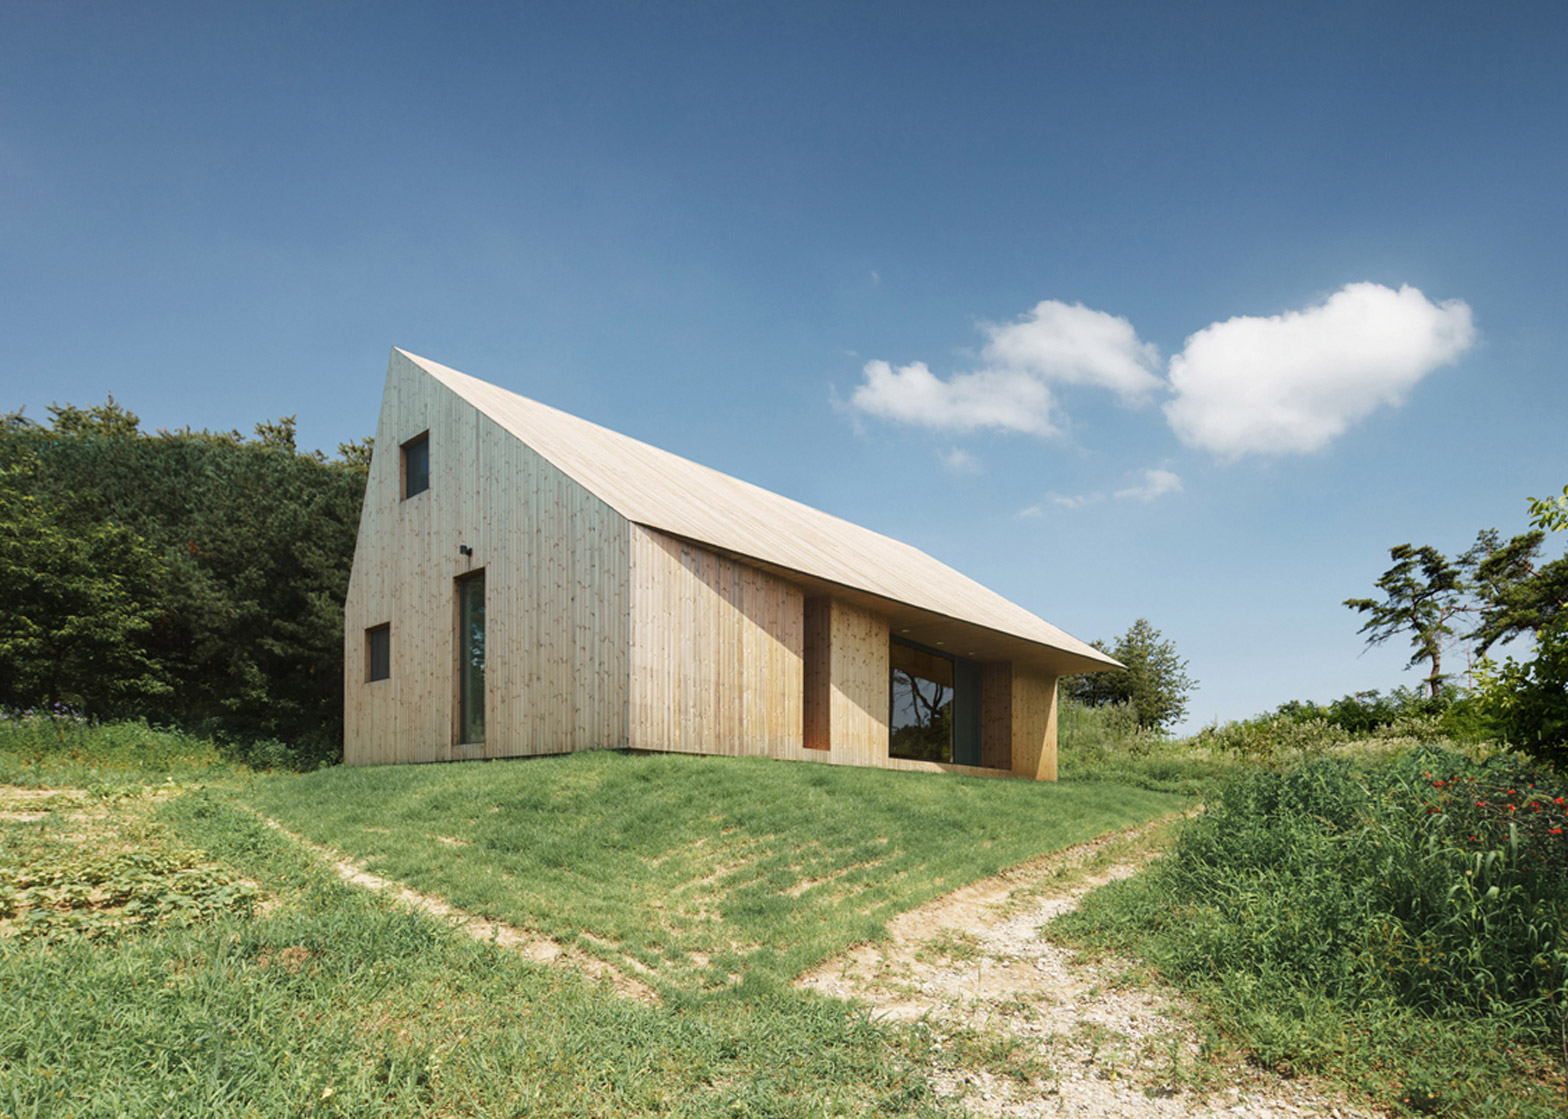 STPMJ completes rural cabin with a swivelled roof in South Korea